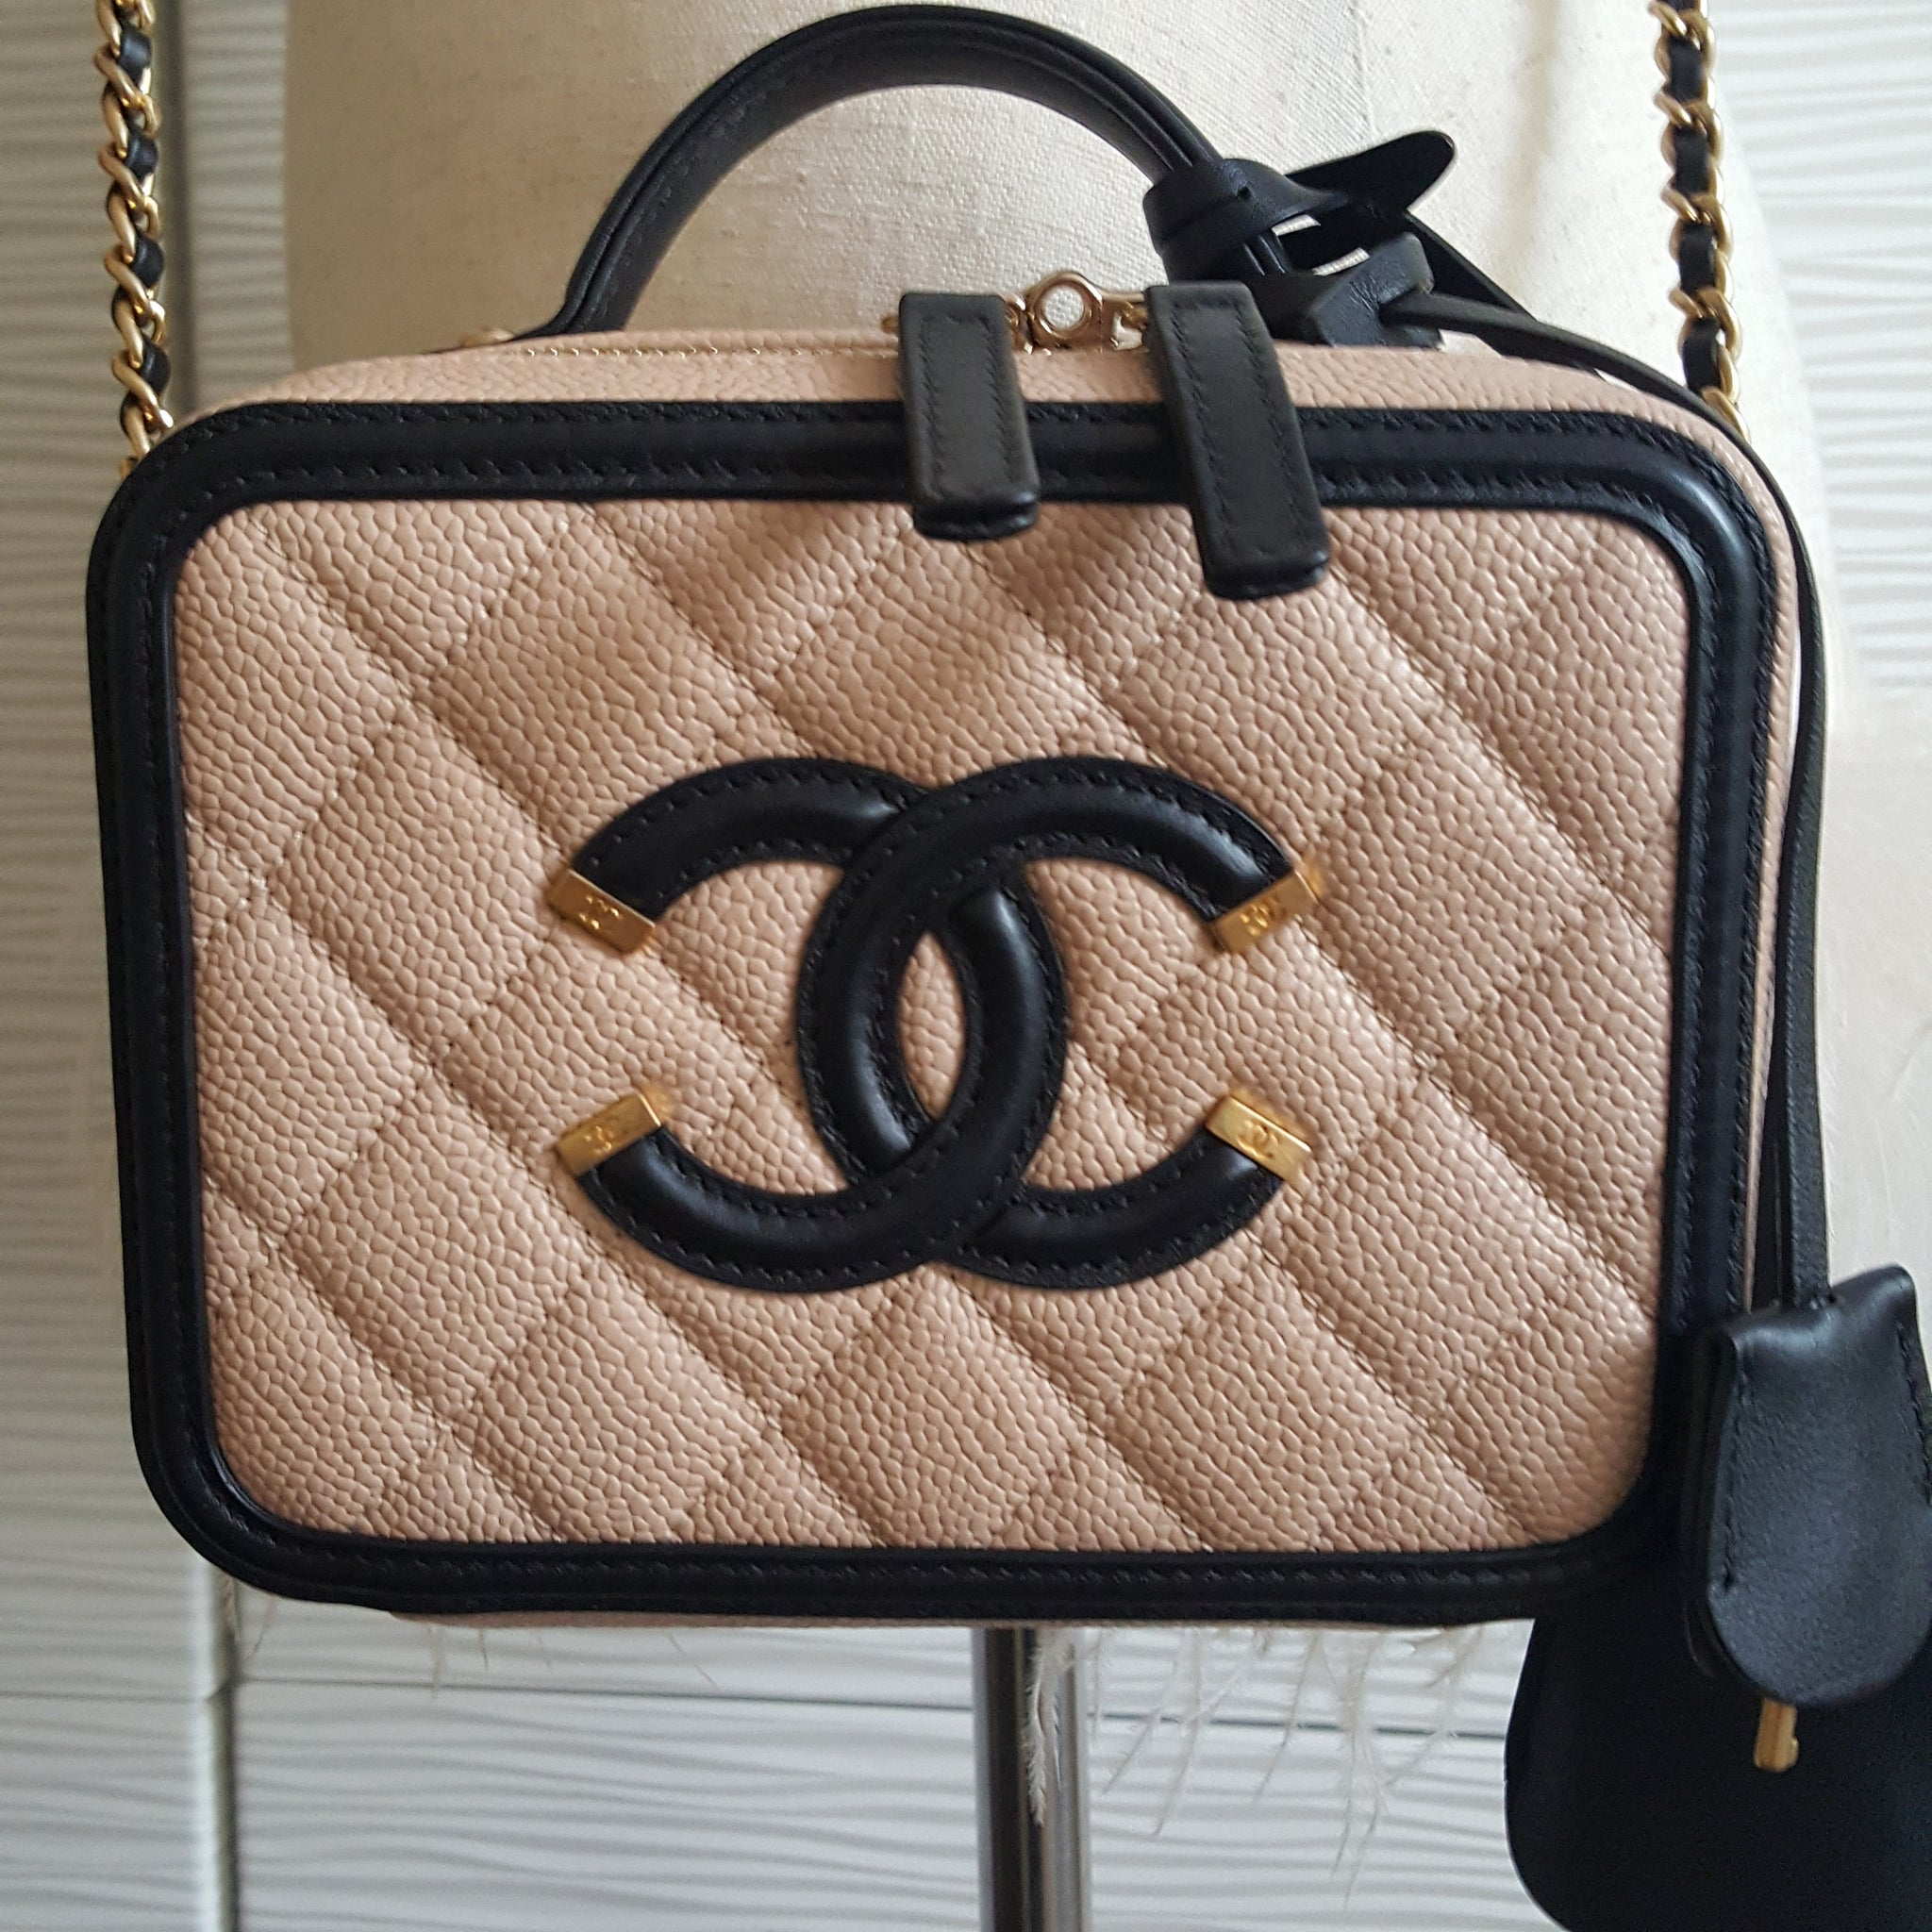 CHANEL CC FILIGREE VANITY CASE BAG IN BEIGE/BLACK